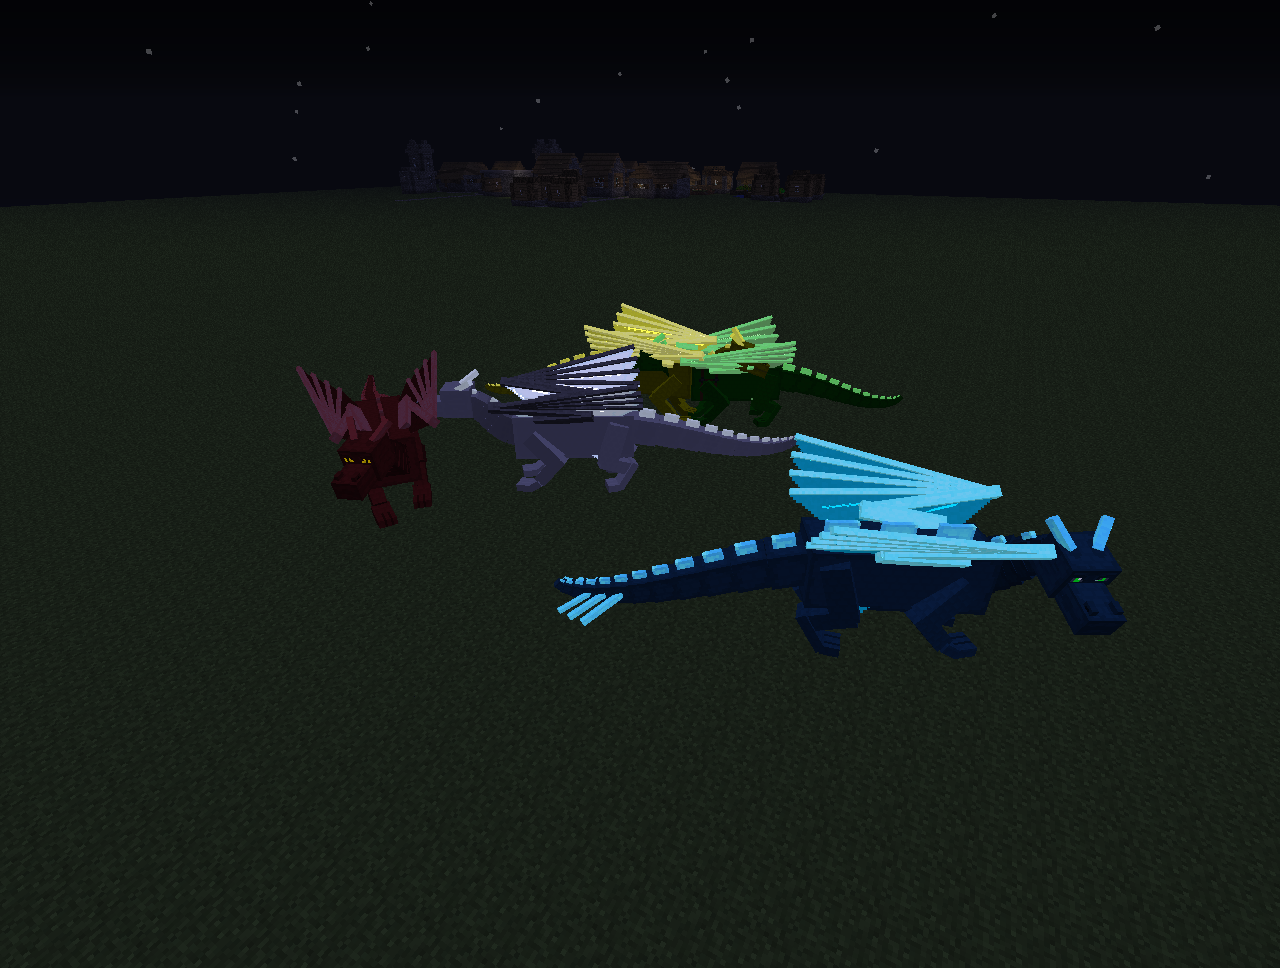 Dragons-glow-in-the-dark.png